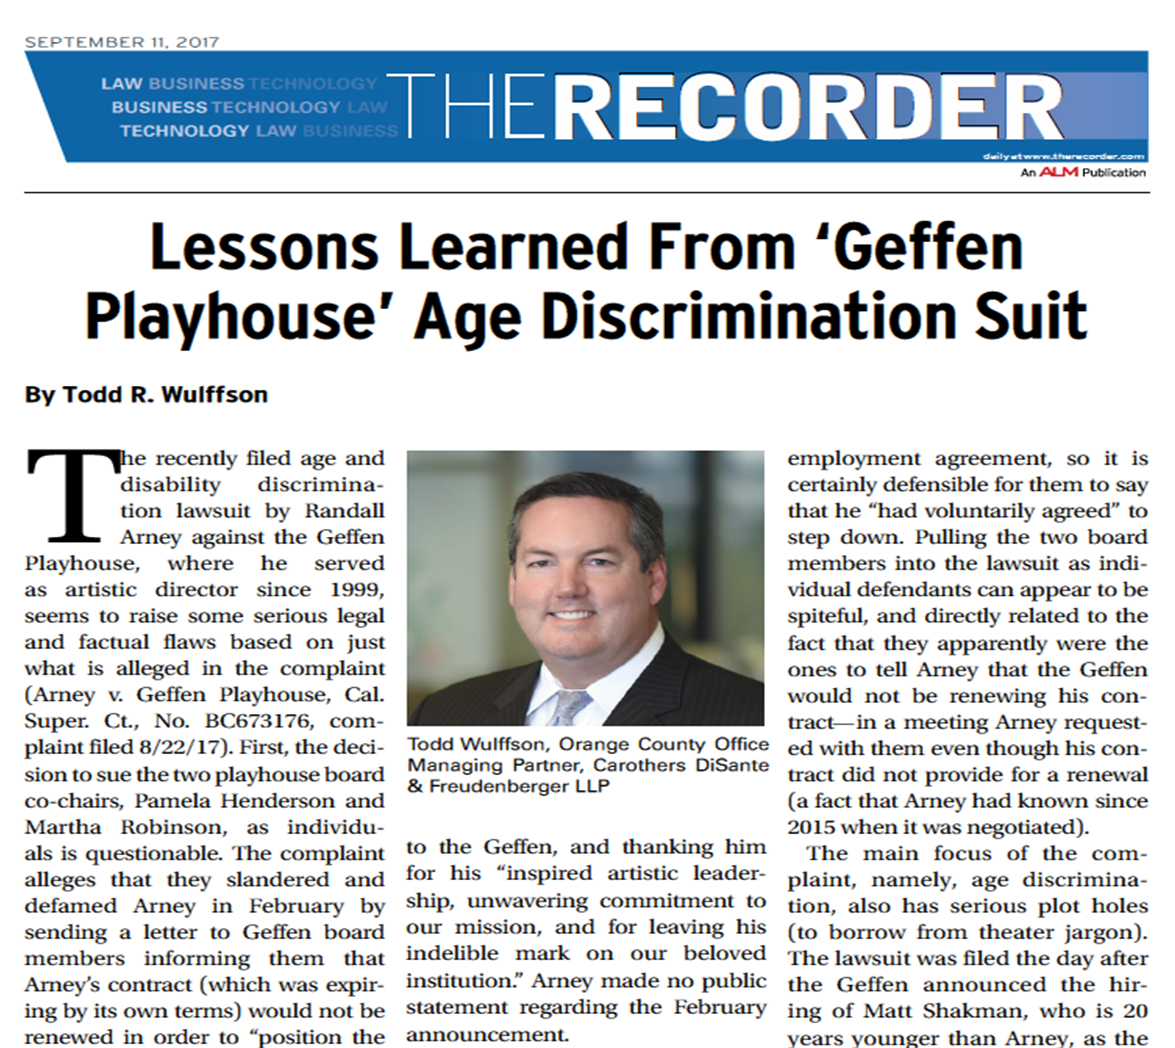 carothers disante & freudenberger llp | news & events | lessons